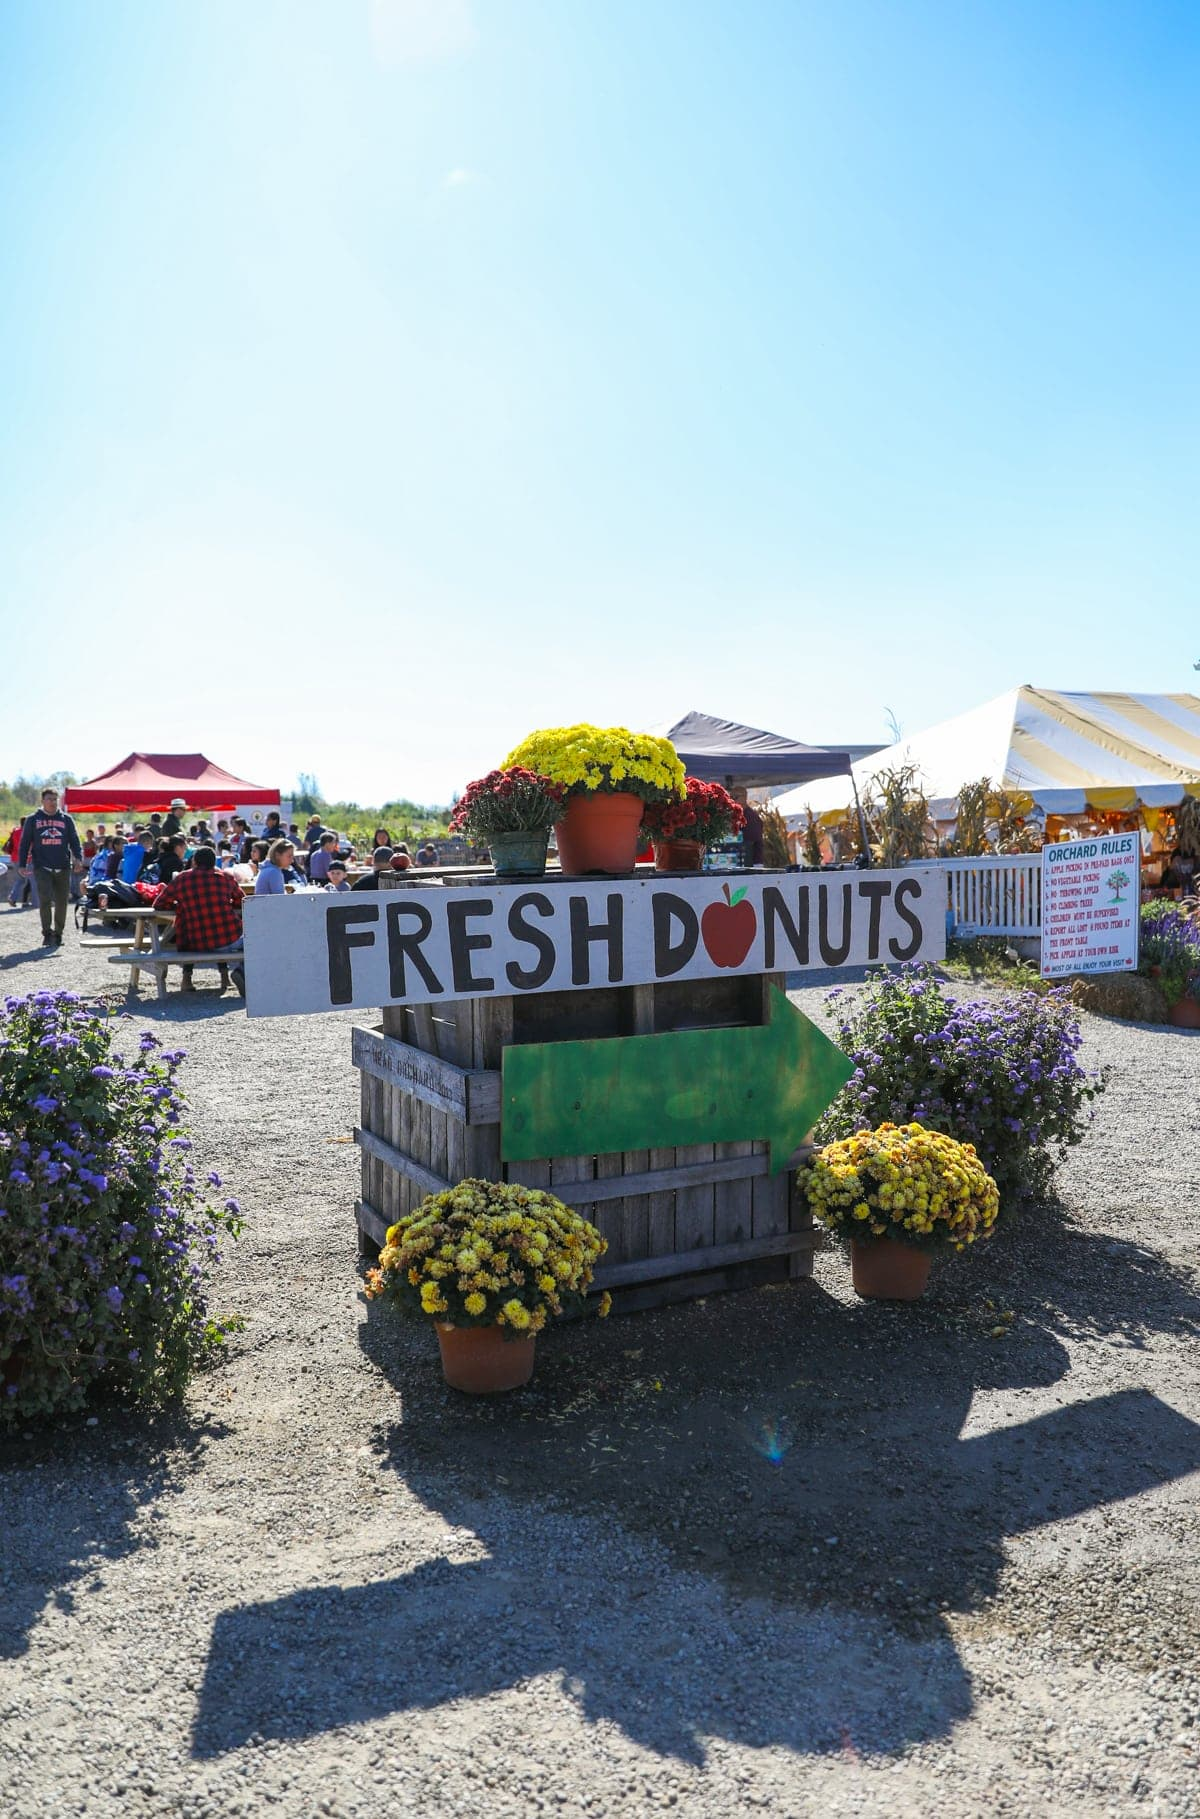 Fresh Donuts sign at the pumpkin patch